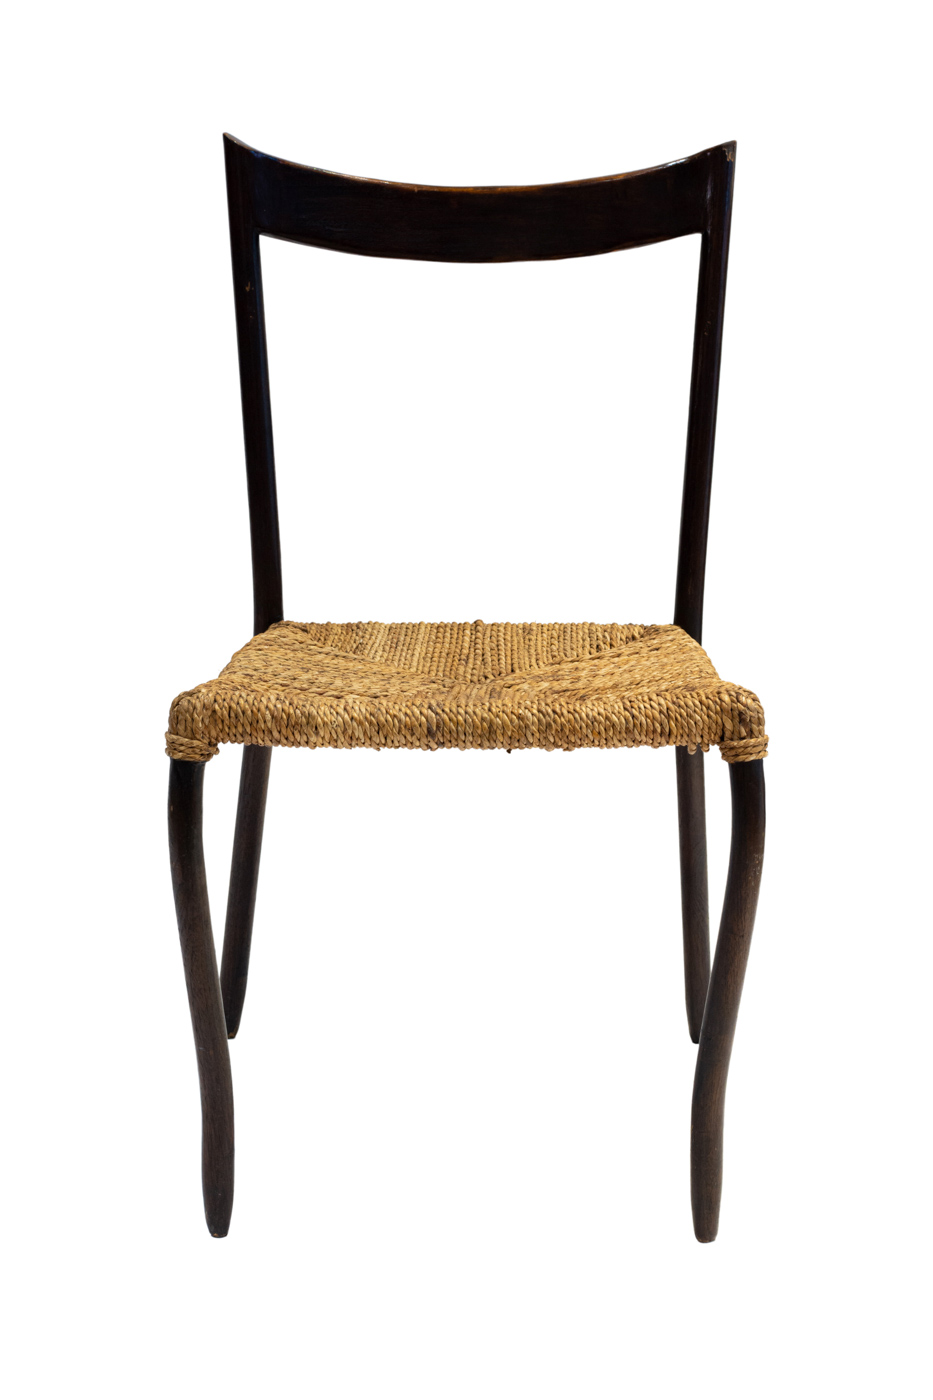 Chair in wood and banana fibre